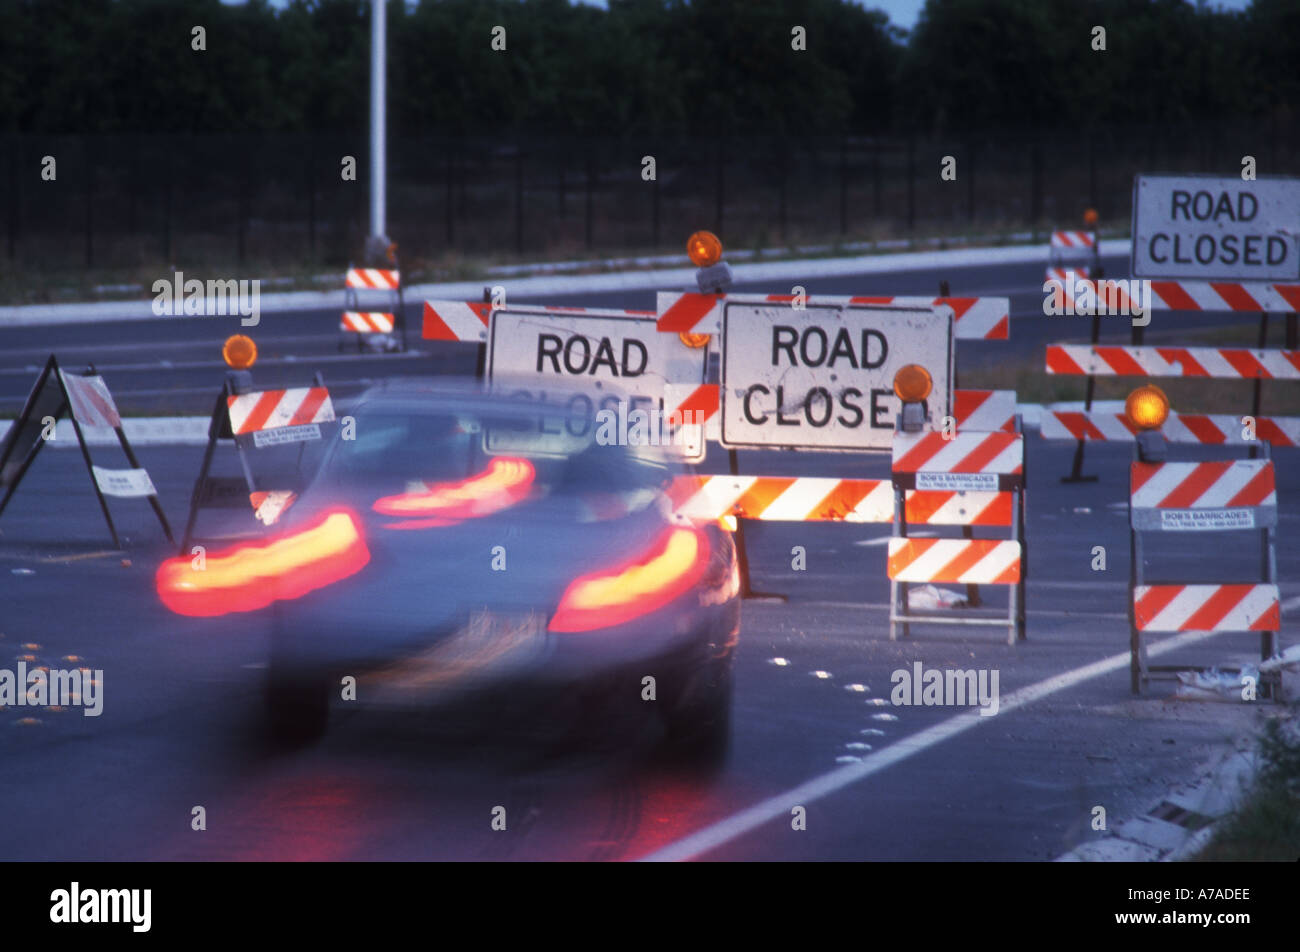 road closed with detour barricades set up with lights - Stock Image